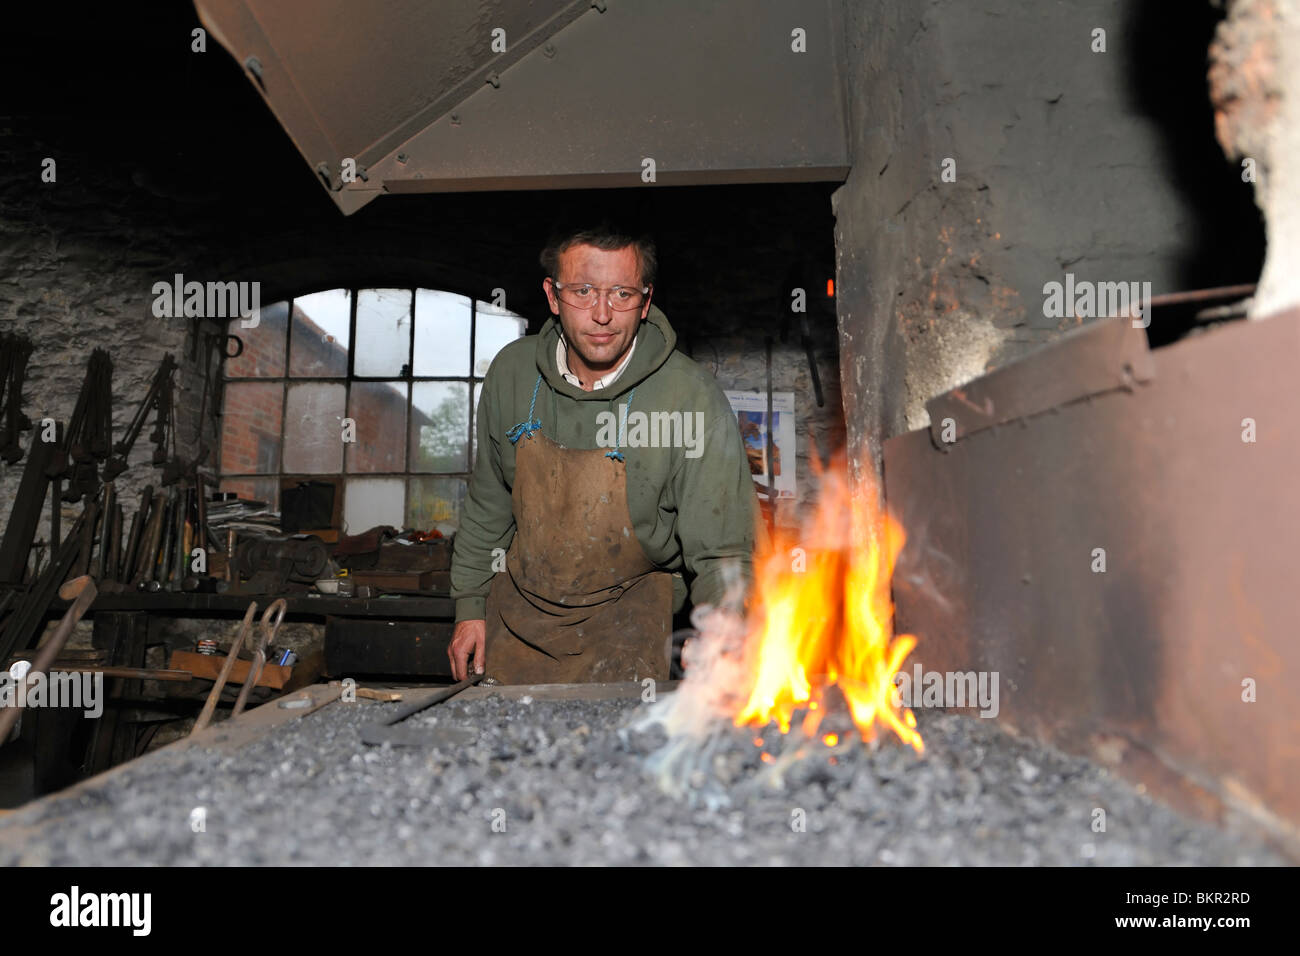 Foundry Forge - Stock Image